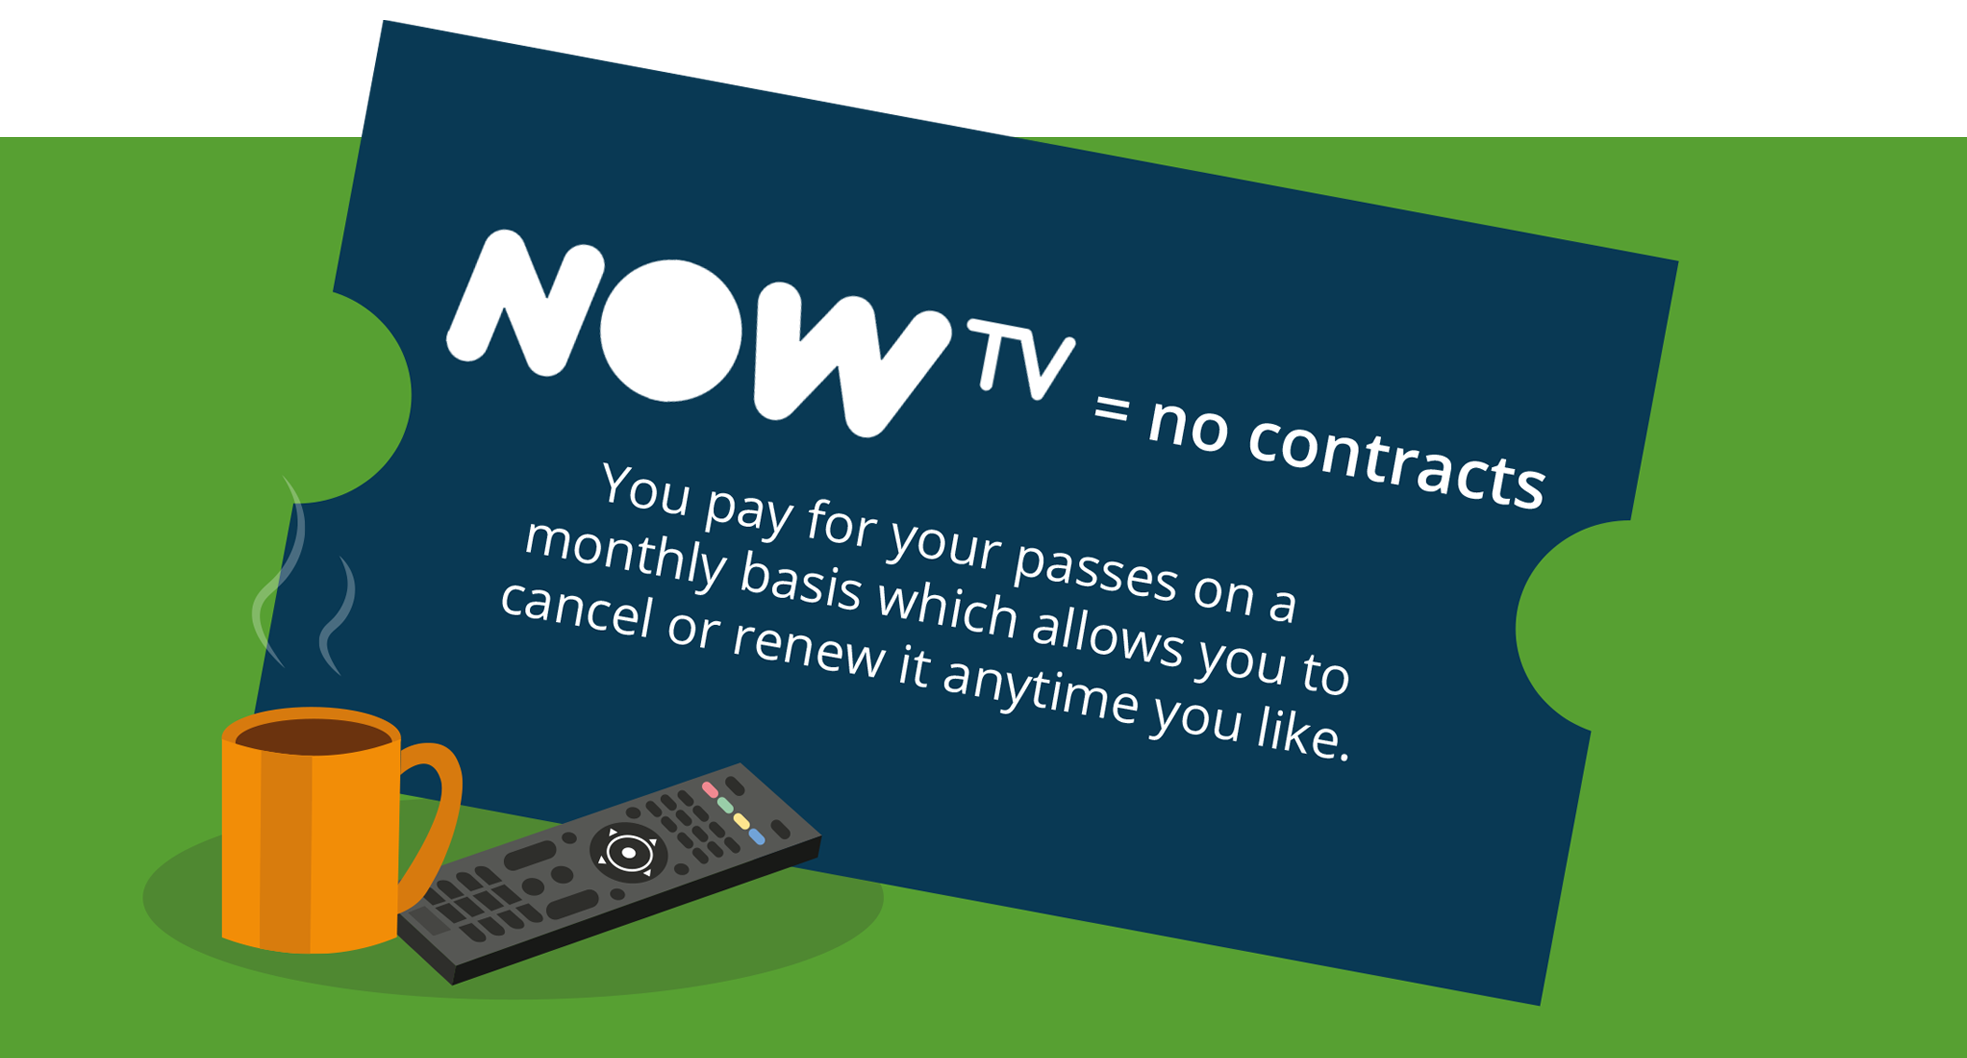 NOW TV monthly passes